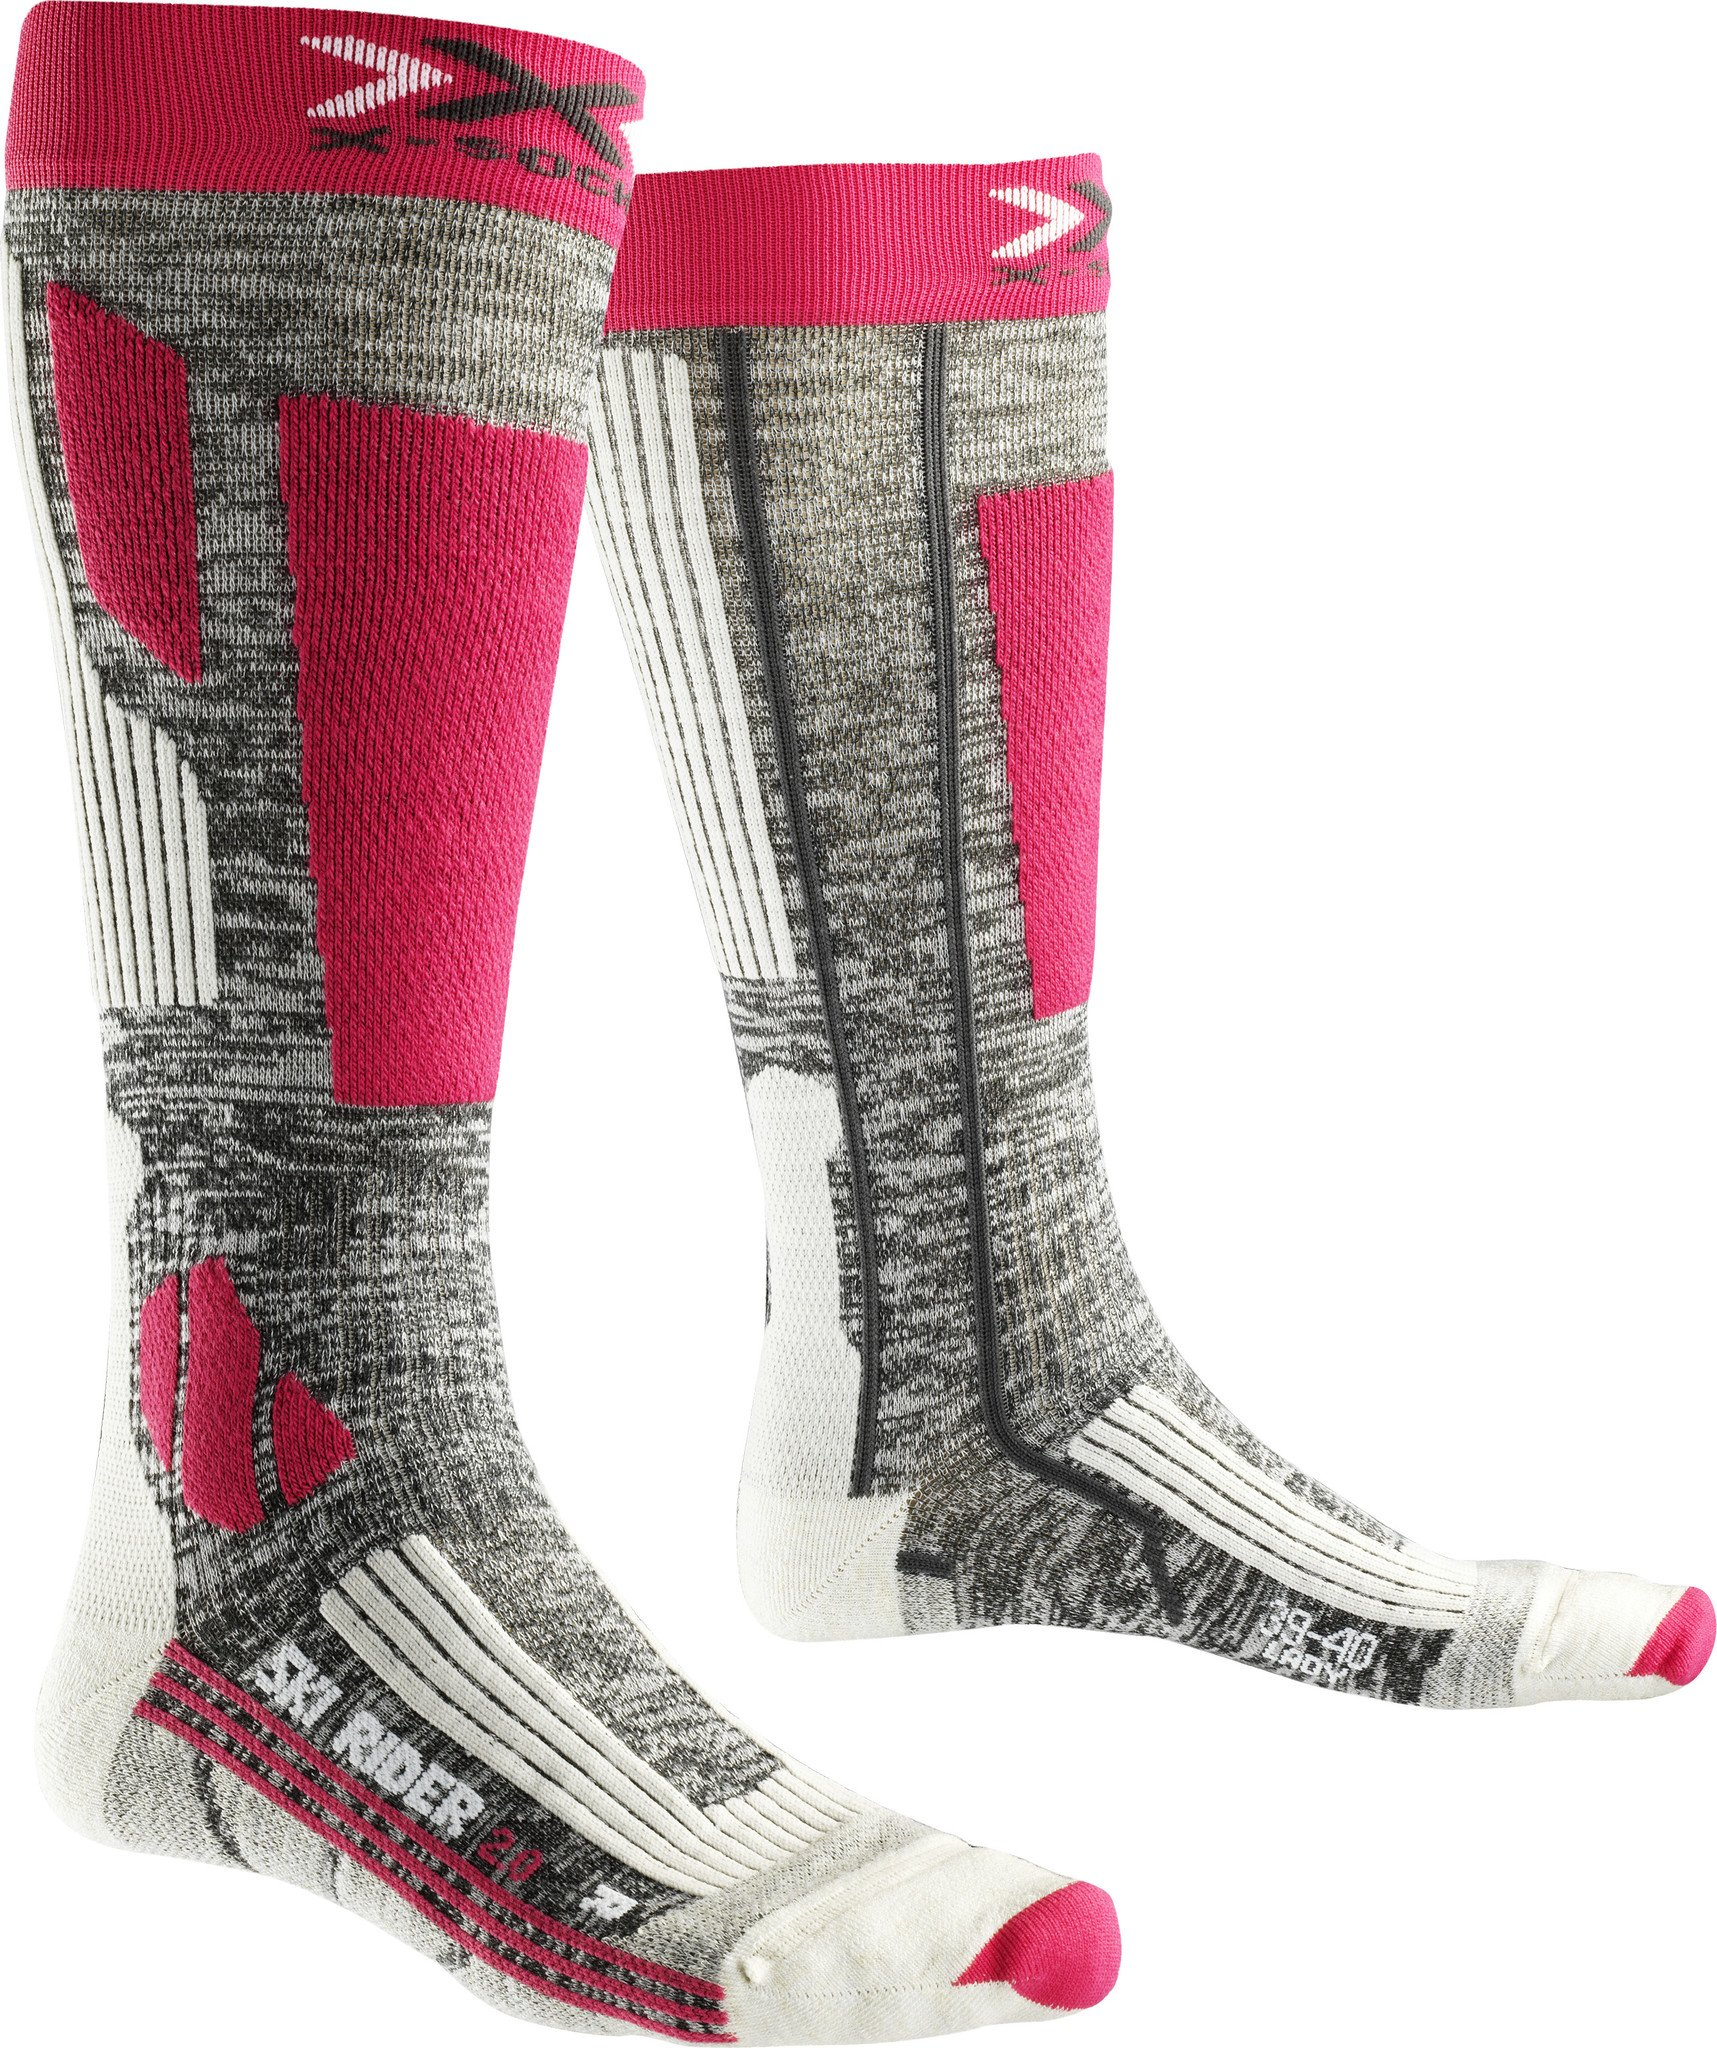 X-Socks Damen SKI Rider 2.0 Lady Socken, Grey Melange/Fuchsia, 39/40